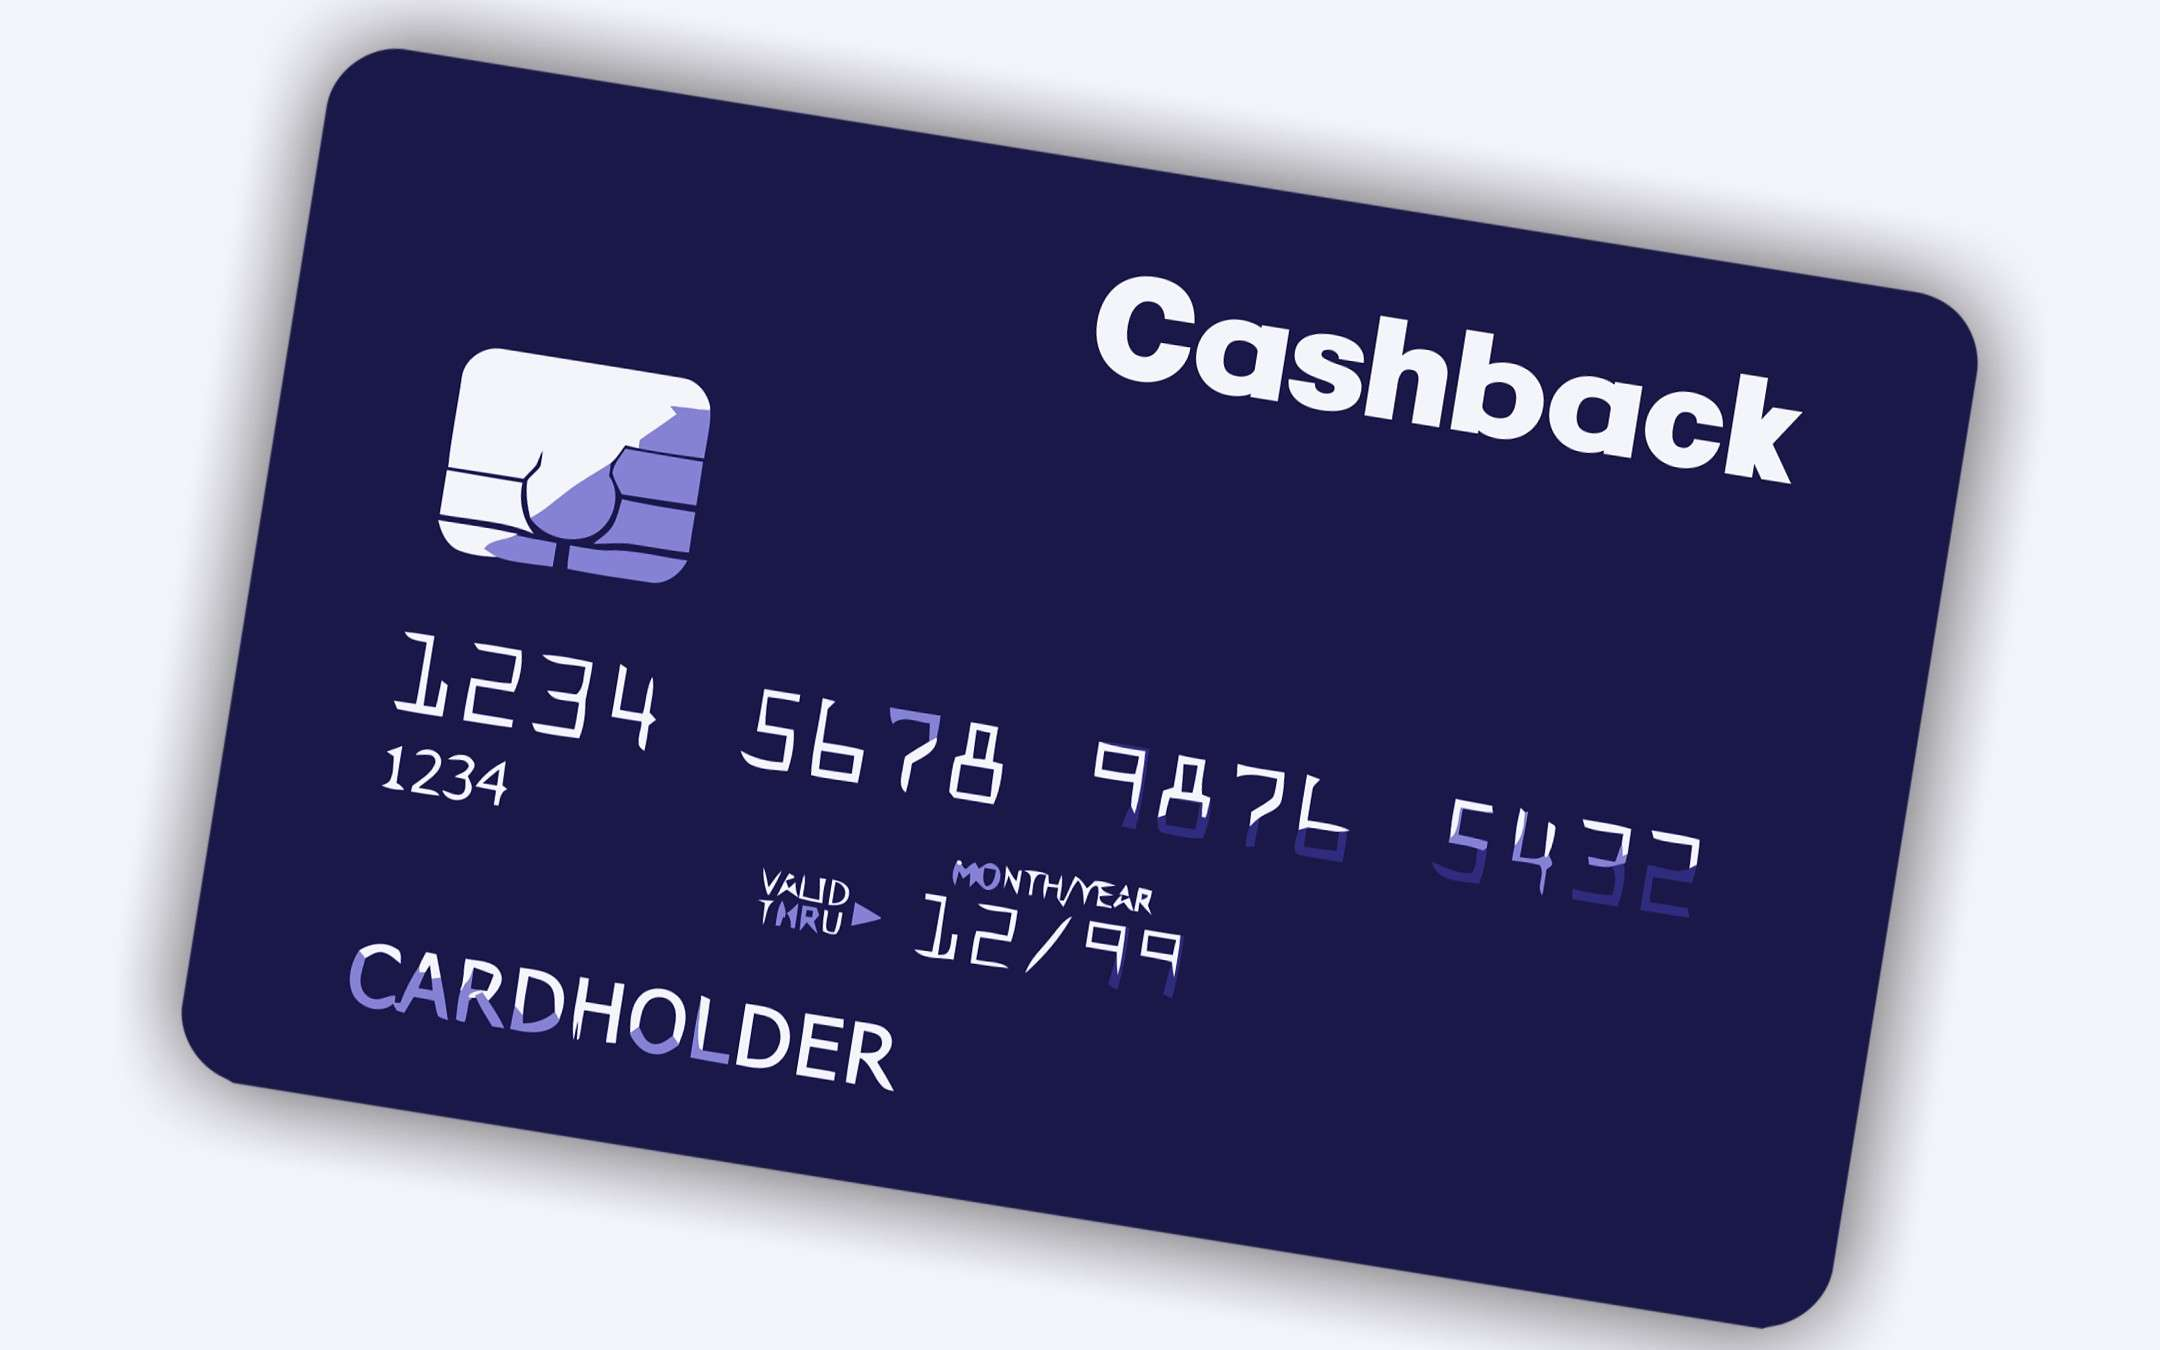 Pick & Pay: so there is cashback even when buying online